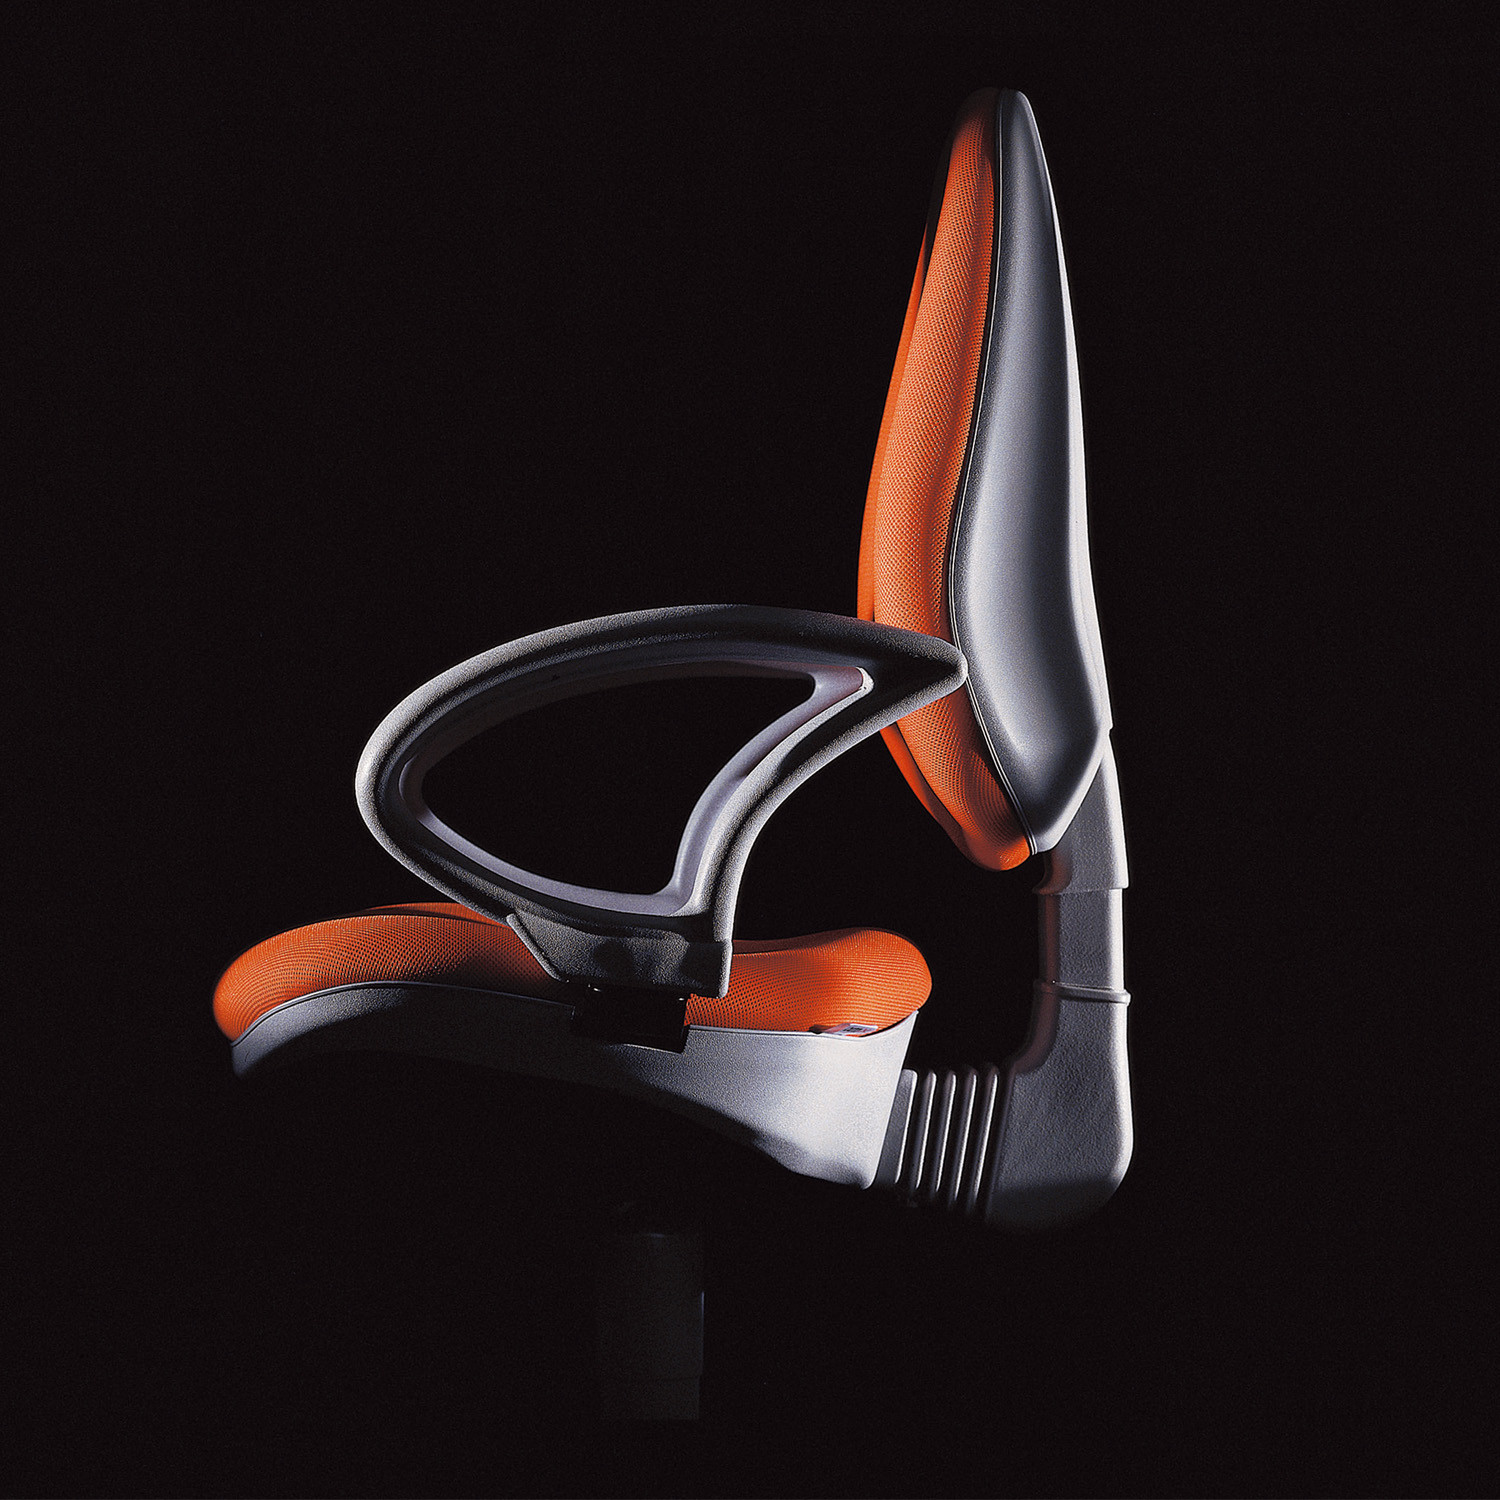 Wing Ergonomic Office Chair from Luxy